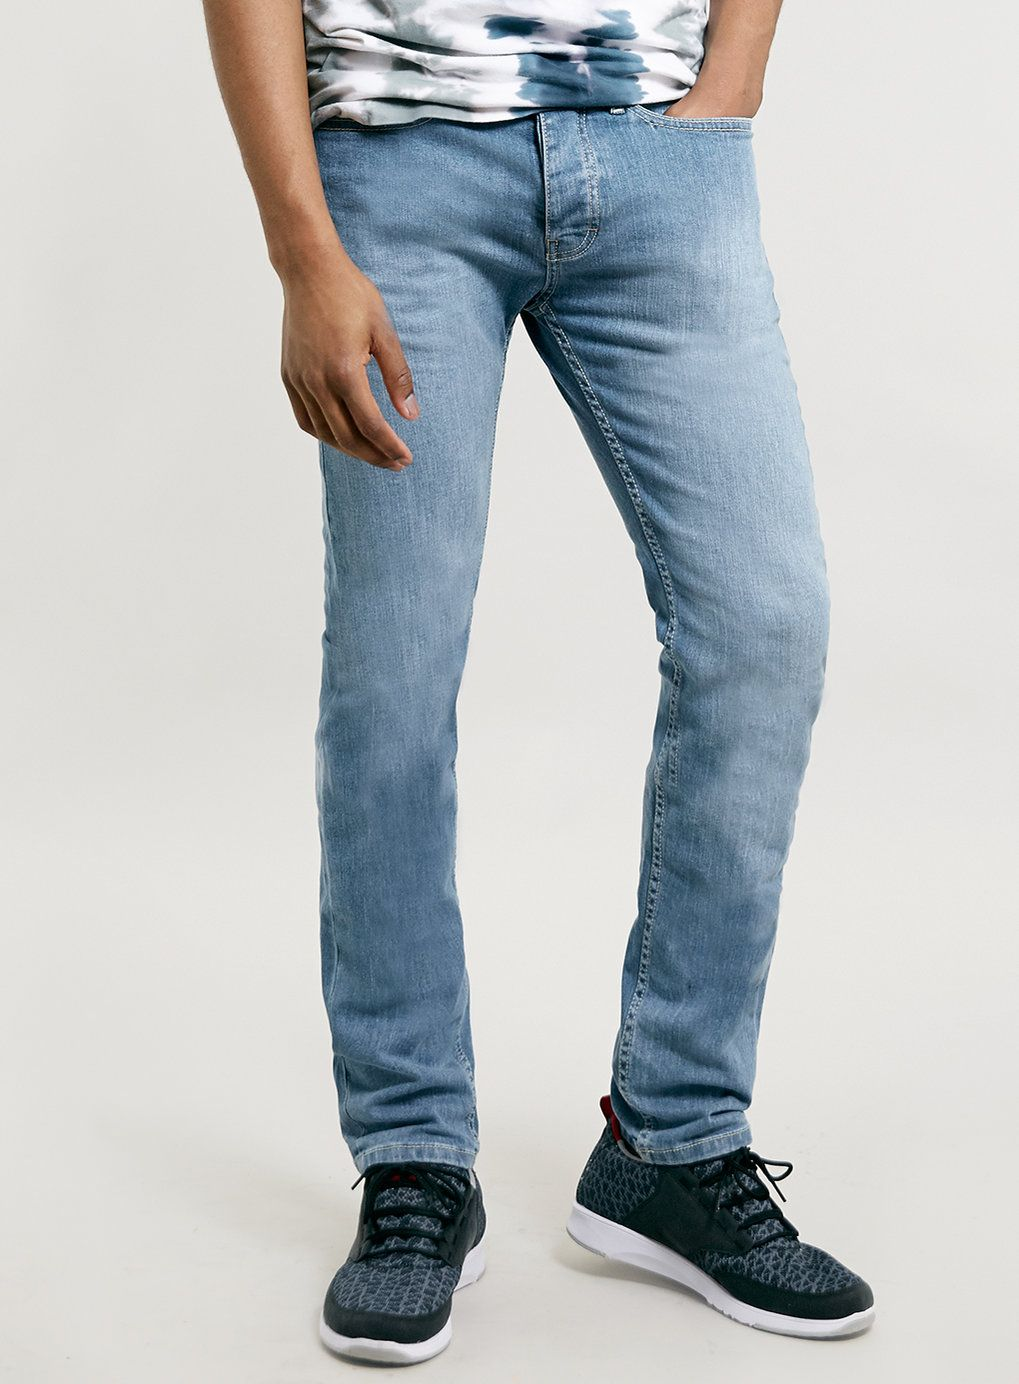 LIGHT POWDER BLUE STRETCH SKINNY JEANS - Men's Jeans - Clothing